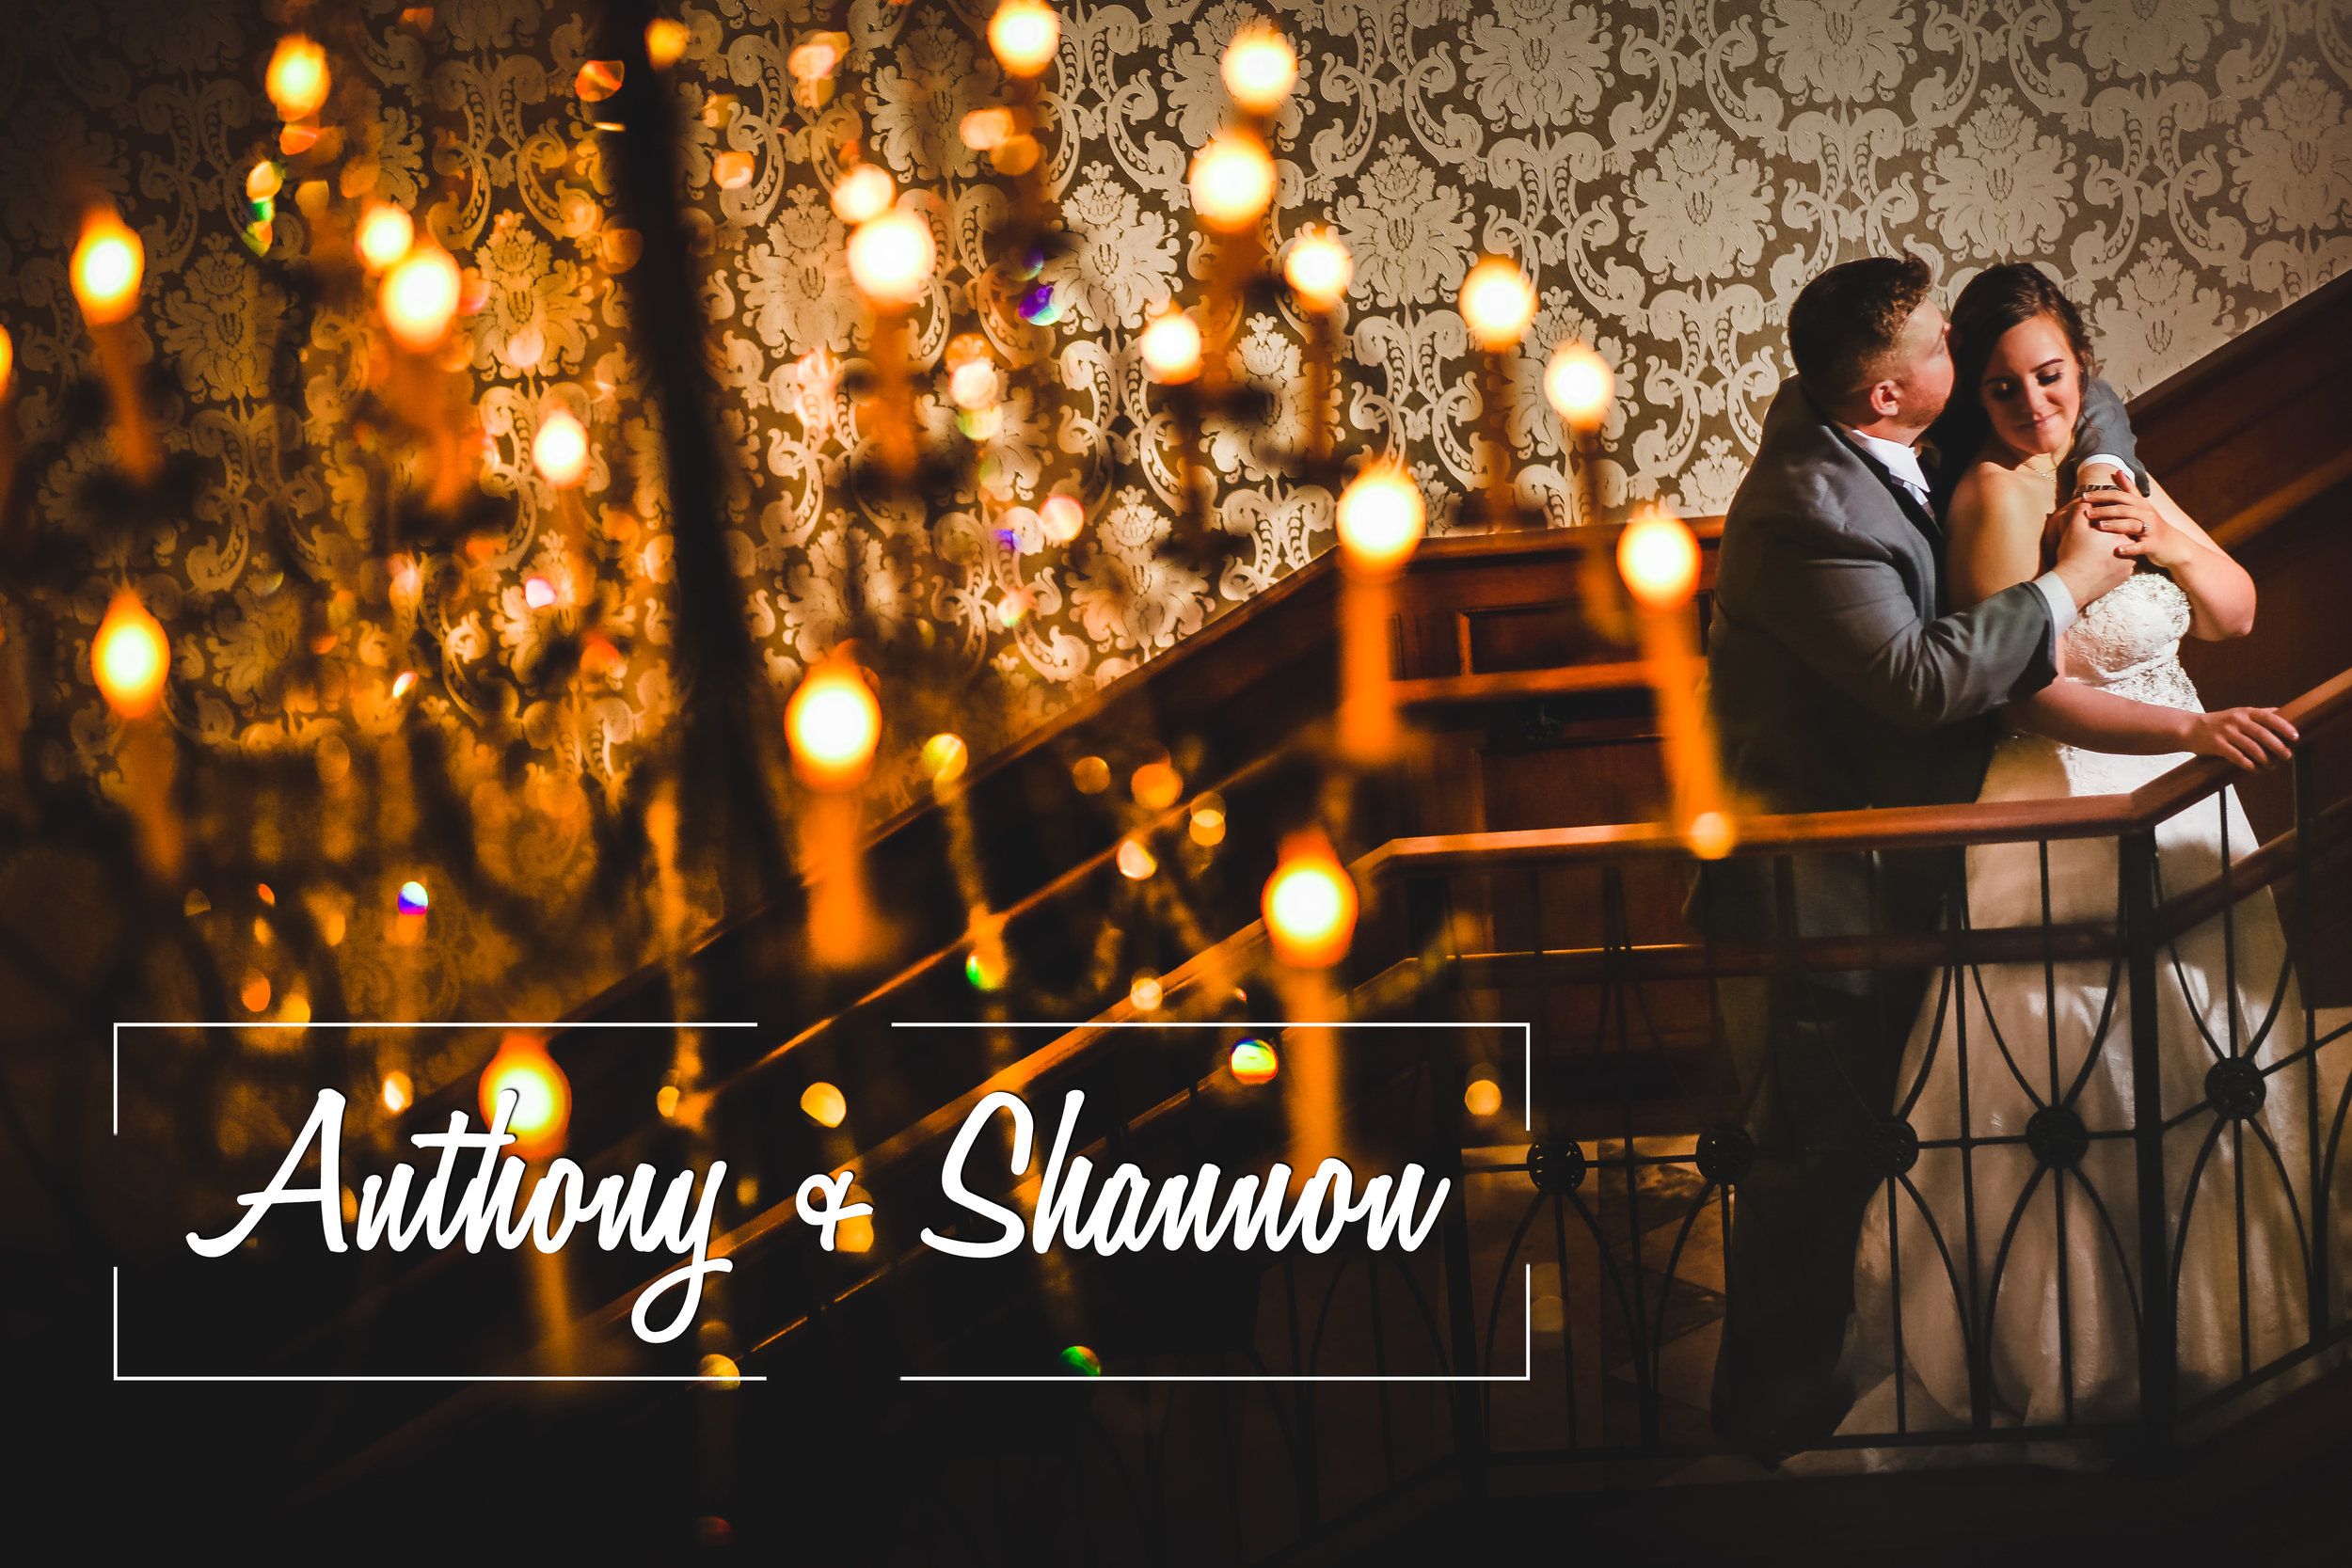 1767-Anthony&Shannon-9U6A8687.jpg